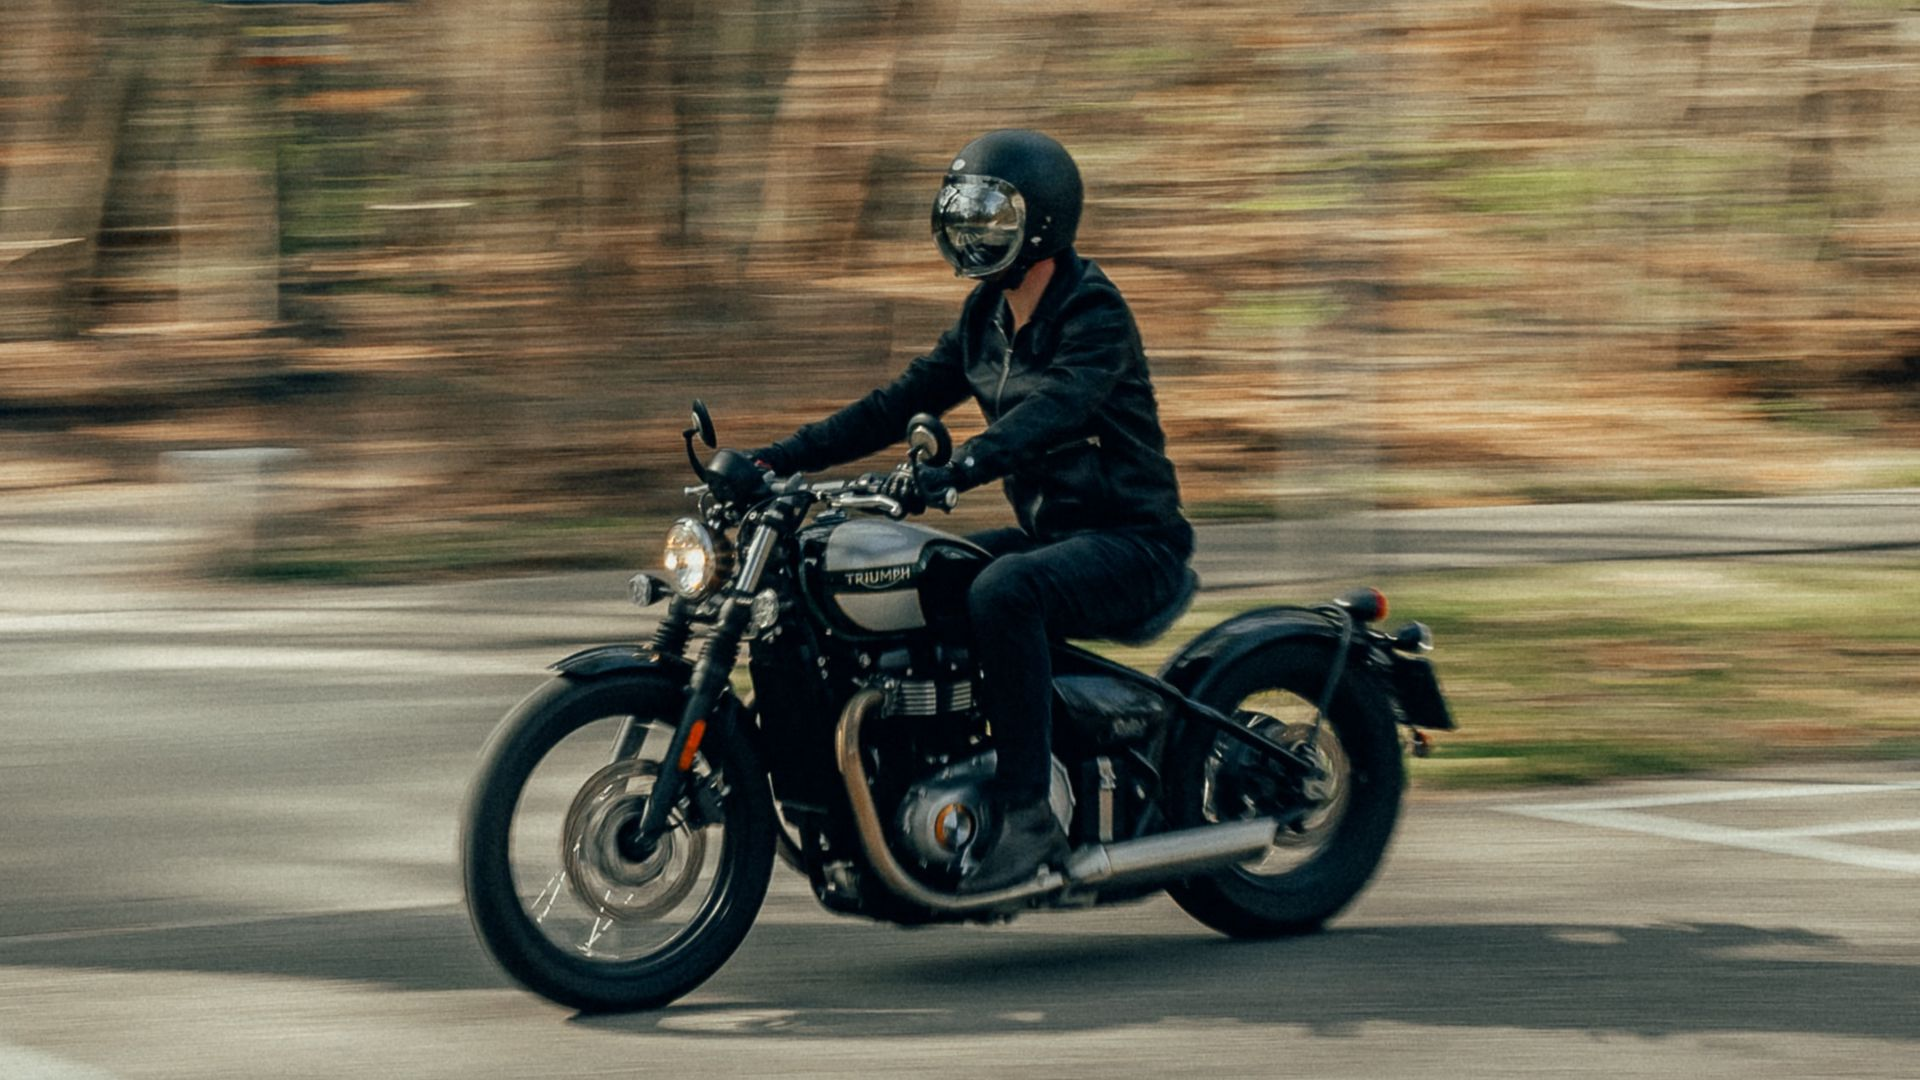 Triumph, Motorcycle, Motorcyclist Wallpapers Free Download